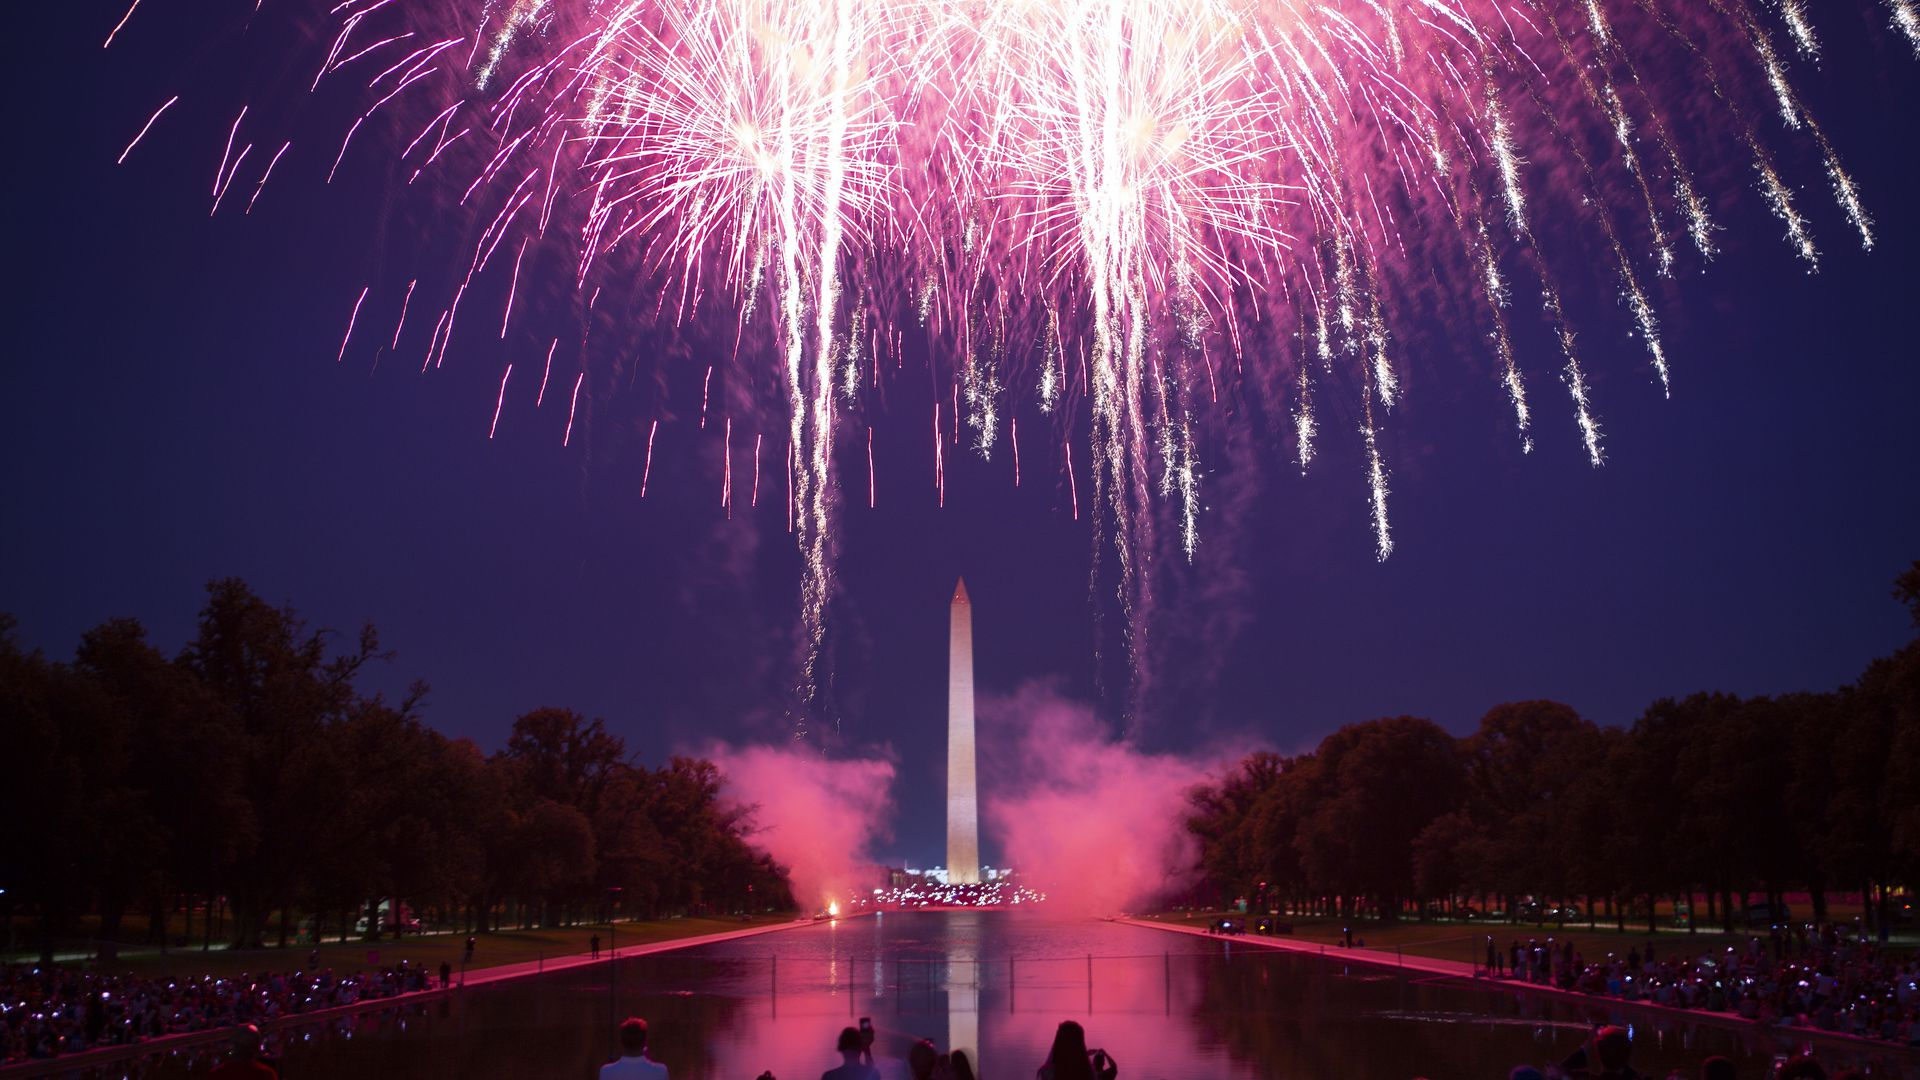 Fourth of July fireworks at the National Mall